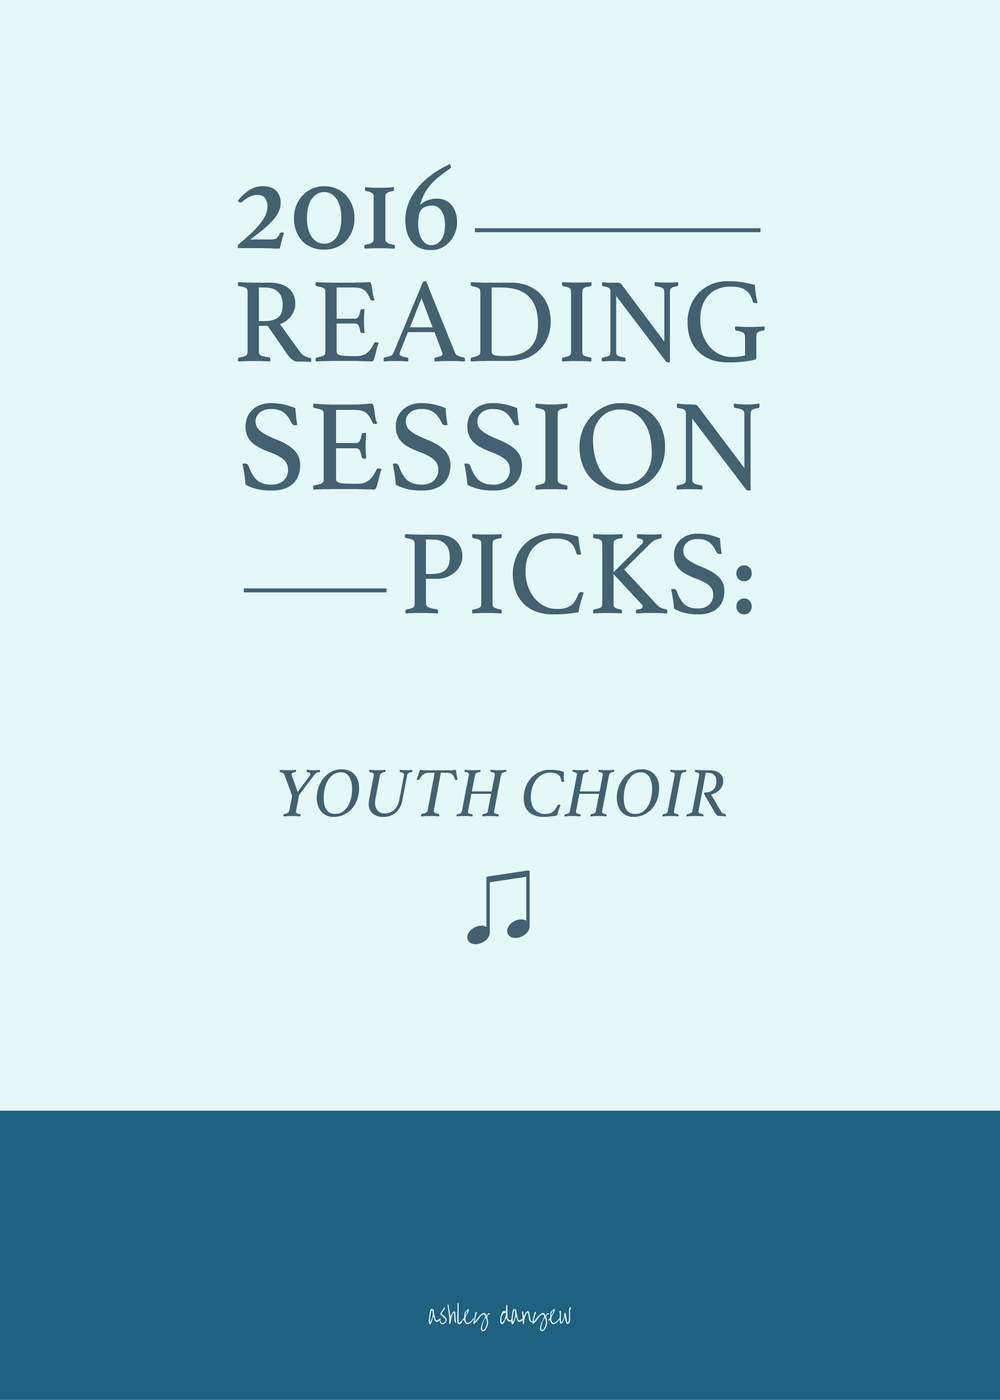 2016-Reading-Session-Picks-Youth-Choir-01.png